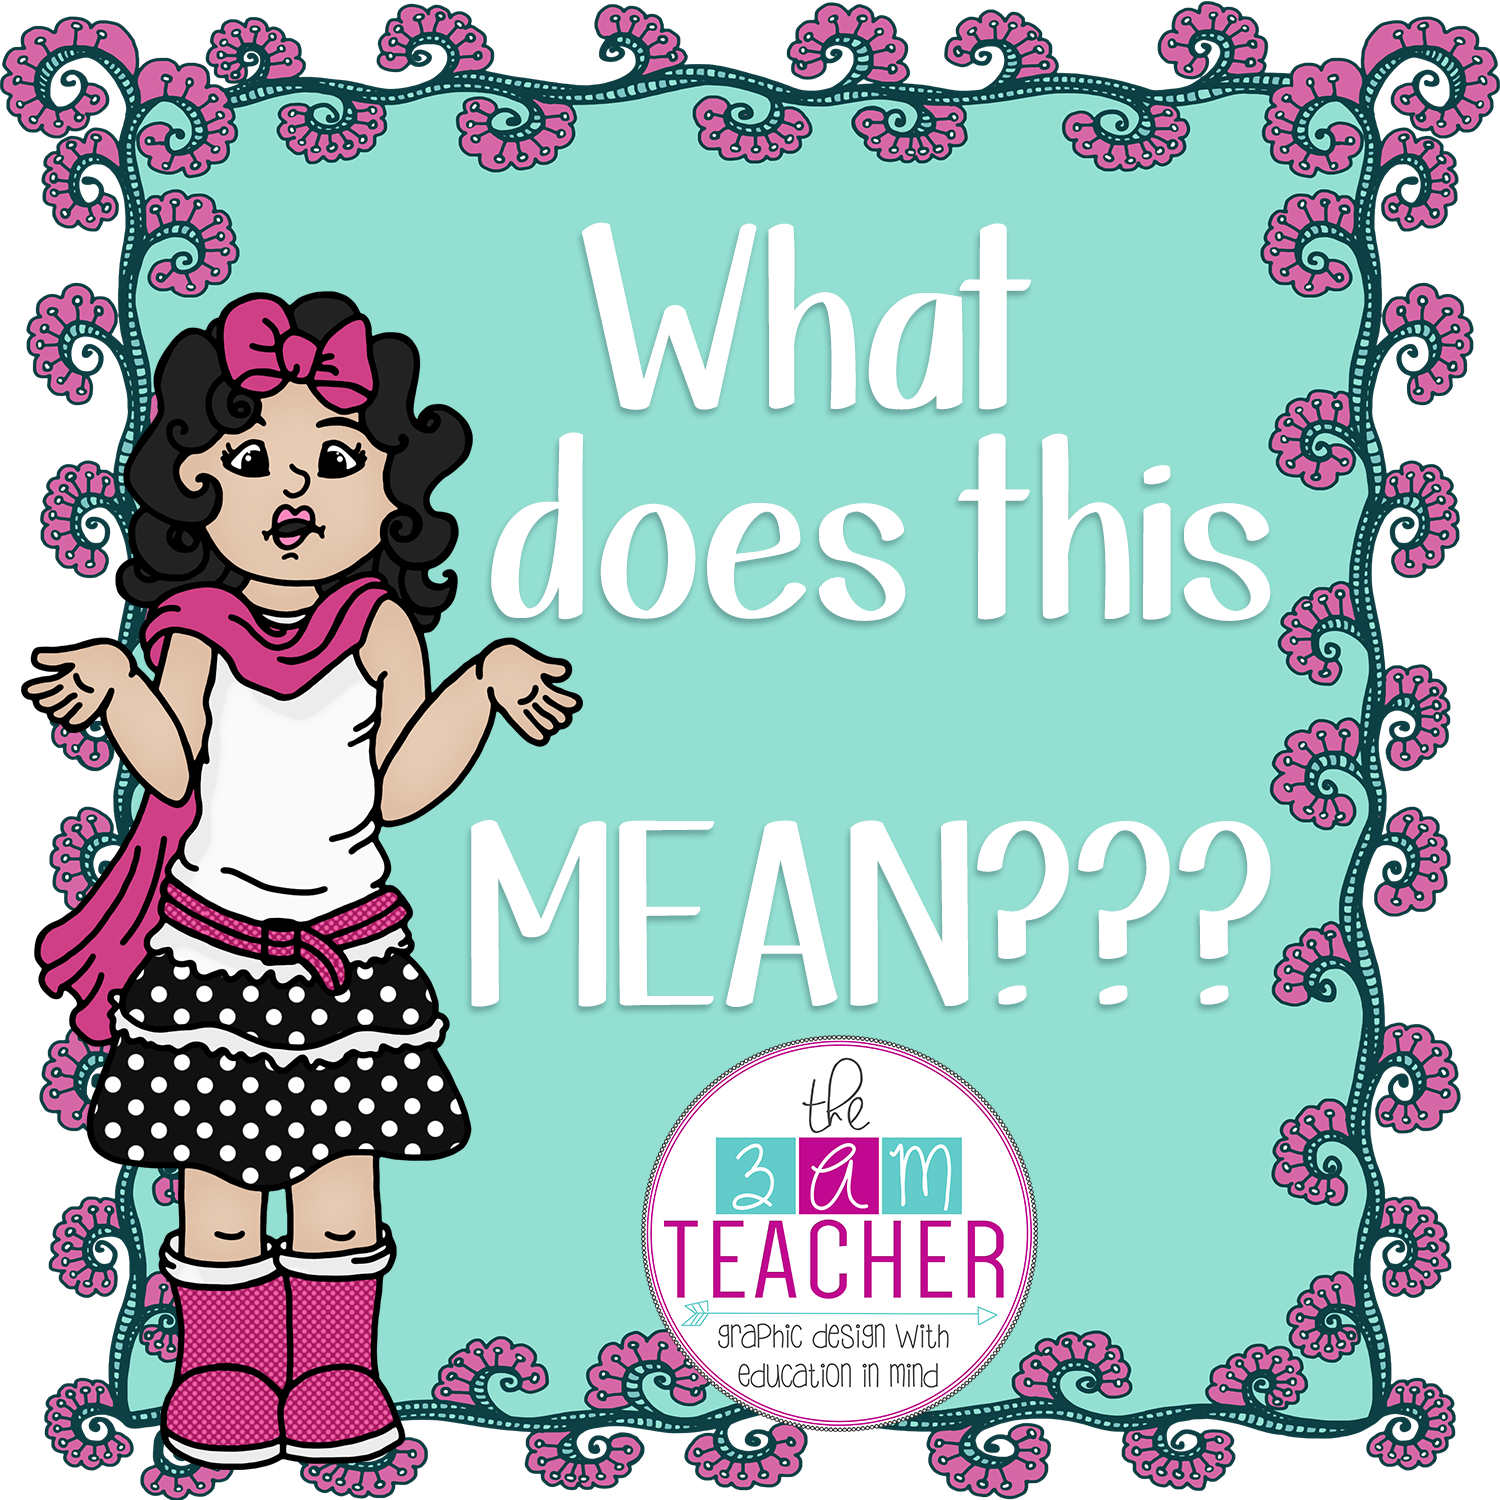 What does transparent clipart mean clipart royalty free The 3am Teacher - Clip Art What Does This Mean , Transparent ... clipart royalty free